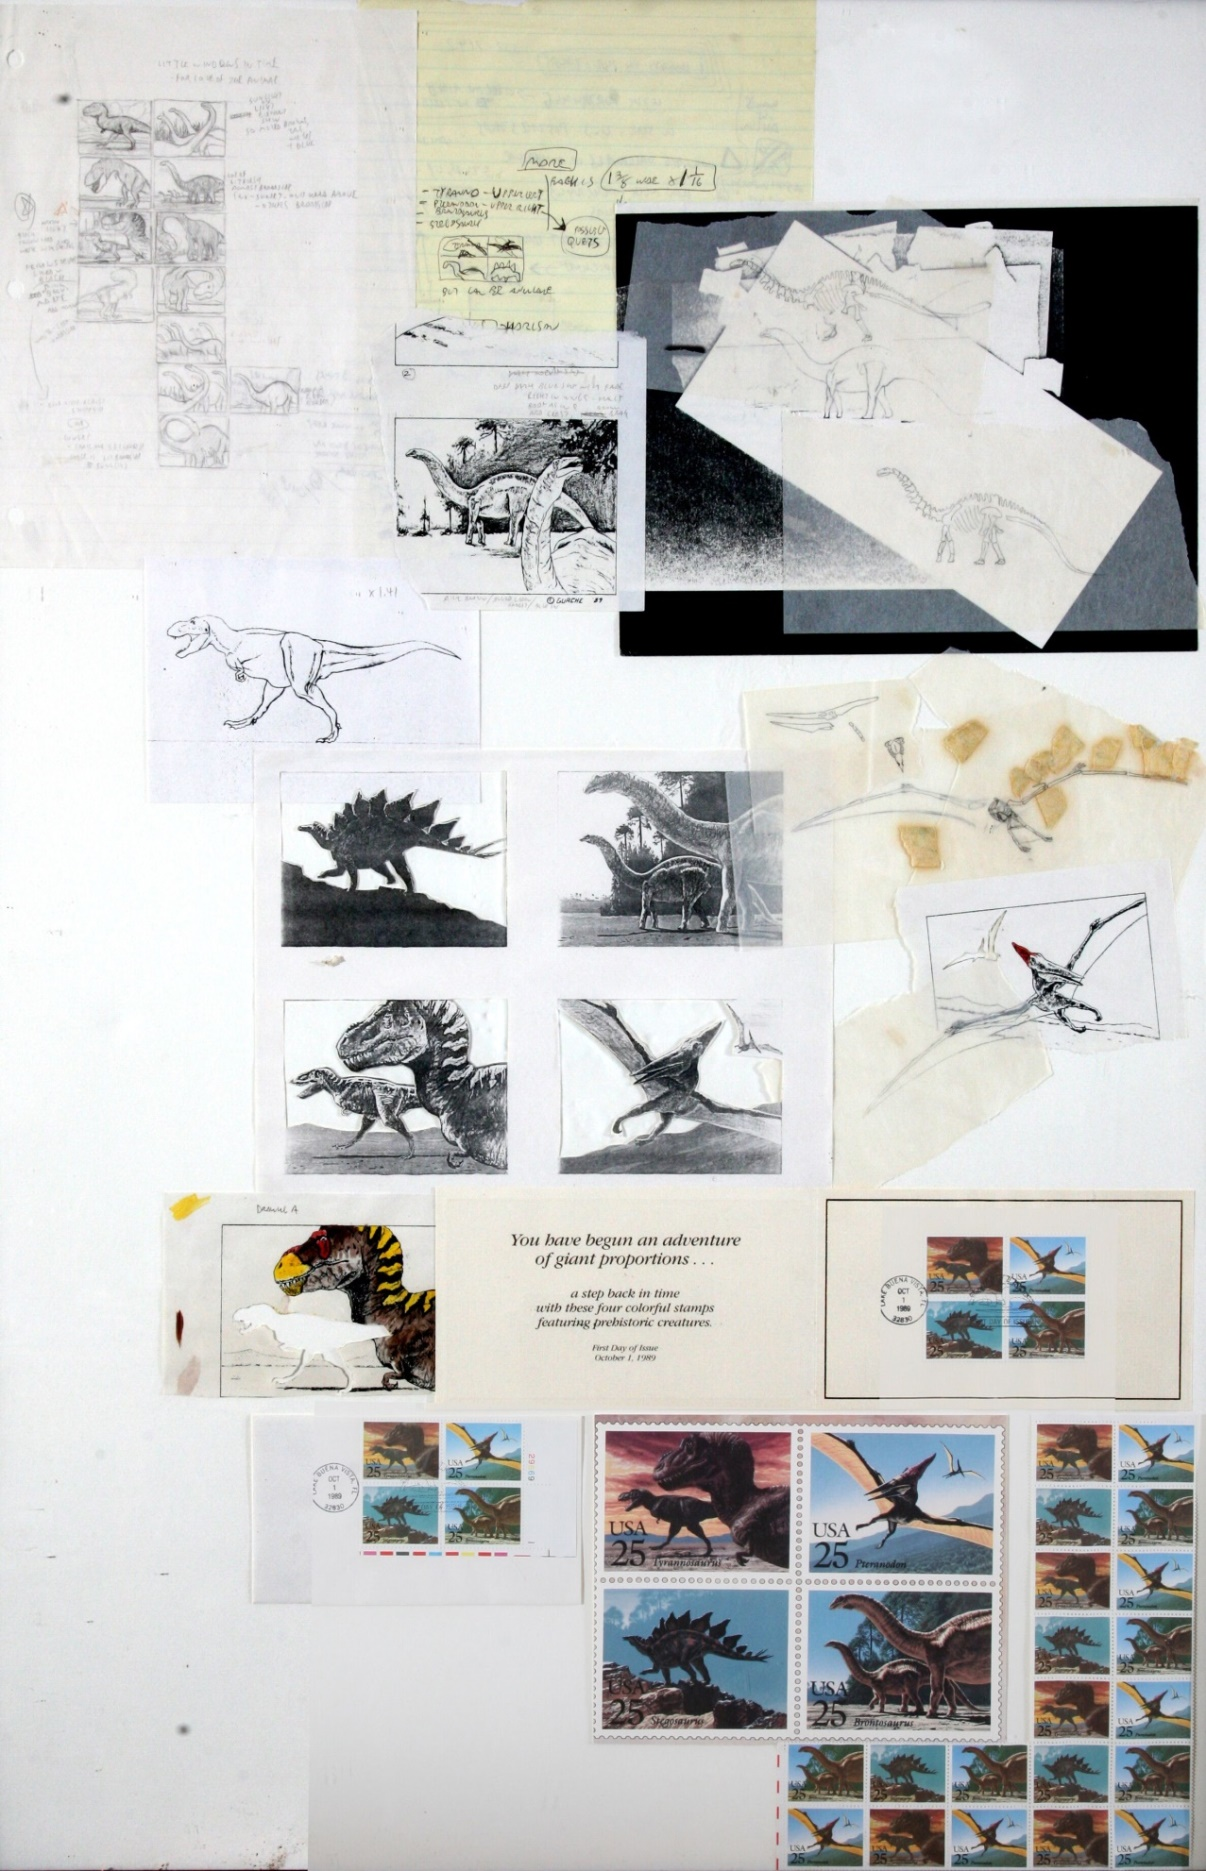 In 1989 the U.S. Postal Service asked me to create art for four dinosaur postage stamps (technically three dinosaurs and a pterosaur) I was already neck-deep in my first  National Geographic  assignment, and I almost declined. In the end, I agreed to create the art, but only if I could work very small, at a scale of 1.5 times the size of a stamp, instead of the usual scale of five times stamp size. They agreed, and the stamps came out later that year. The original paintings of  Stegosaurus ,  Tyrannosaurus, Apatosaurus  and  Pteranodon  are buried in the bowels of the United States Post Office (remember that room at the end of  Raiders of the Lost Ark ?), but I saved my scribbles leading up to the painting, and present them here for sale.  $55,000